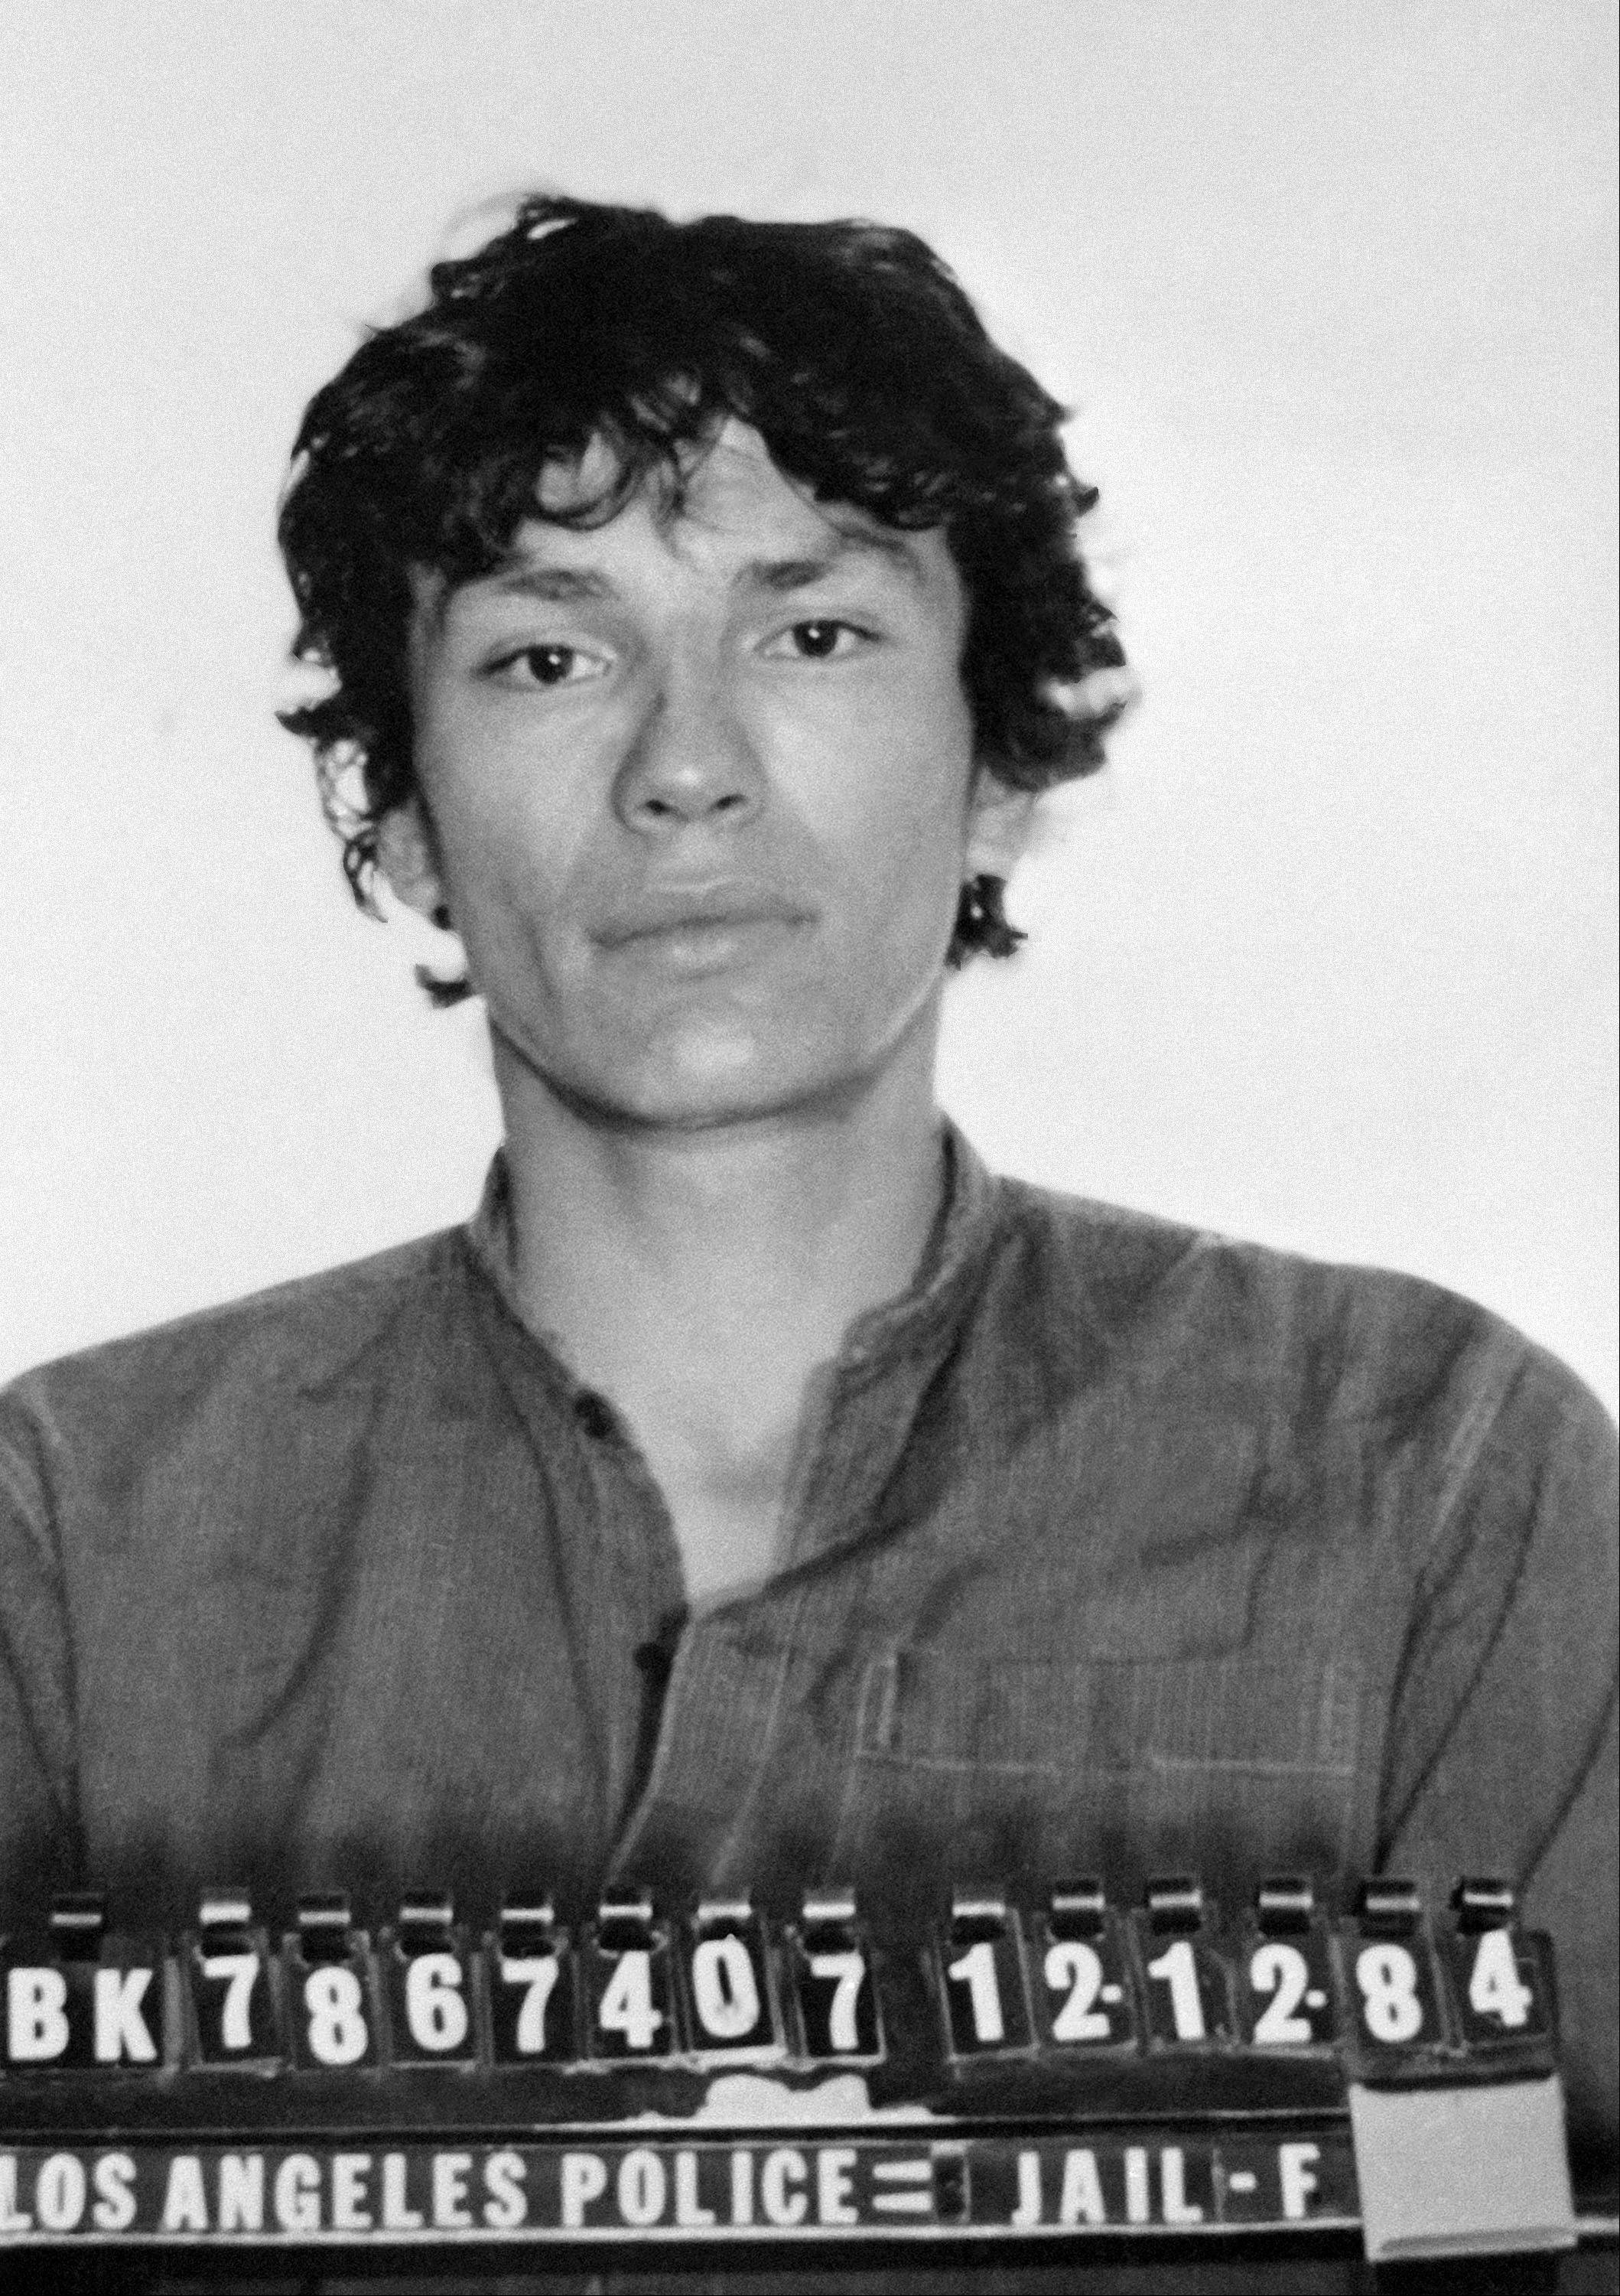 This undated file photo released by the Los Angeles Police Department shows the booking photo of serial killer Richard Ramirez shown in Los Angeles, Calif. Ramirez, known as the Night Stalker, has died in prison. San Quentin State Prison spokesman Lt. Sam Robinson says Ramirez died Friday, June 7, 2013.